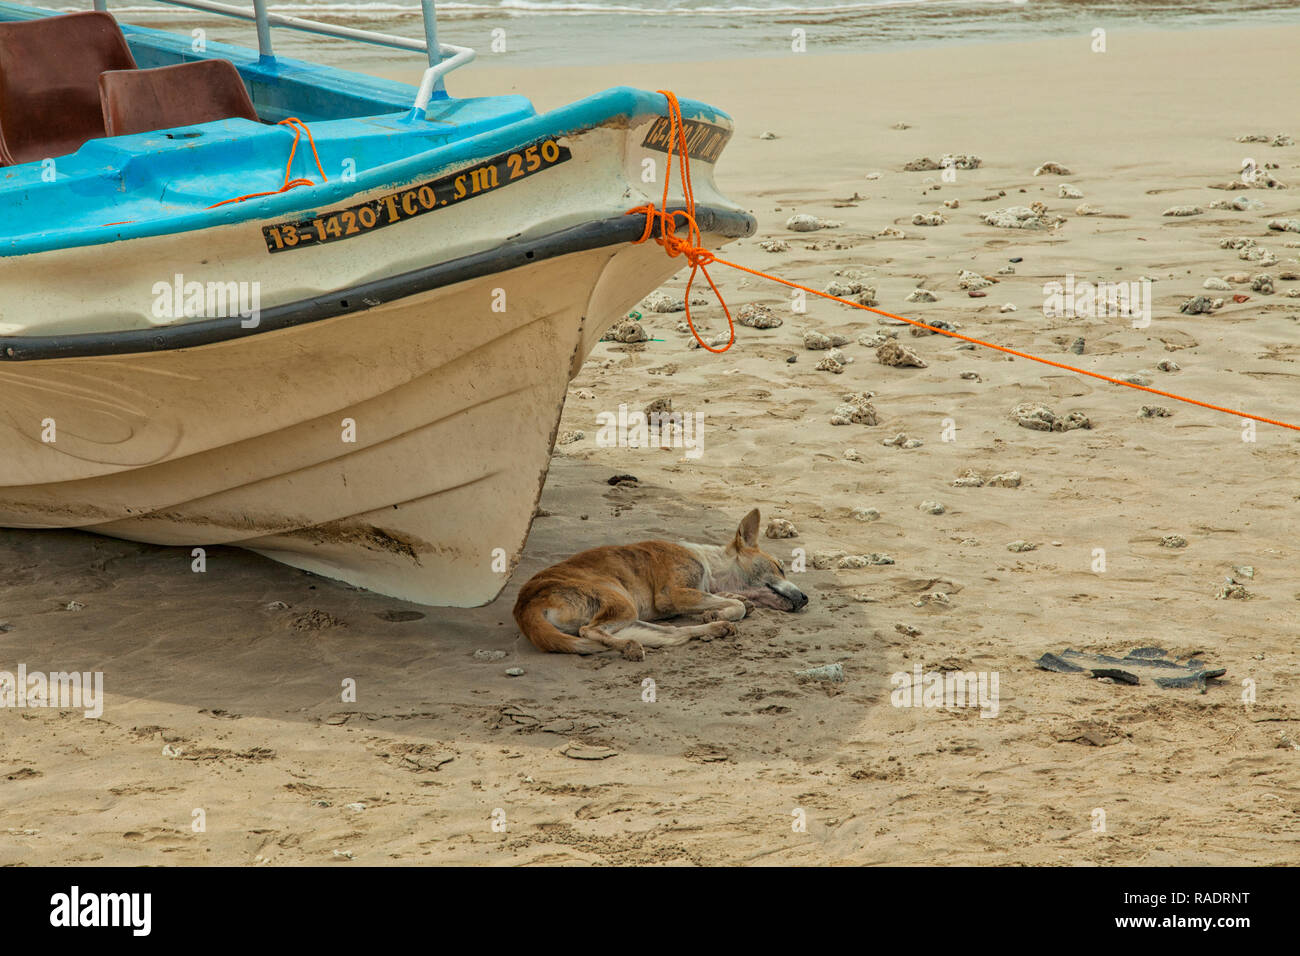 Dog sheltering from the sun in the shade of a local fishing boat on the sandy beach in Trincomalee, Sri Lanka - Stock Image